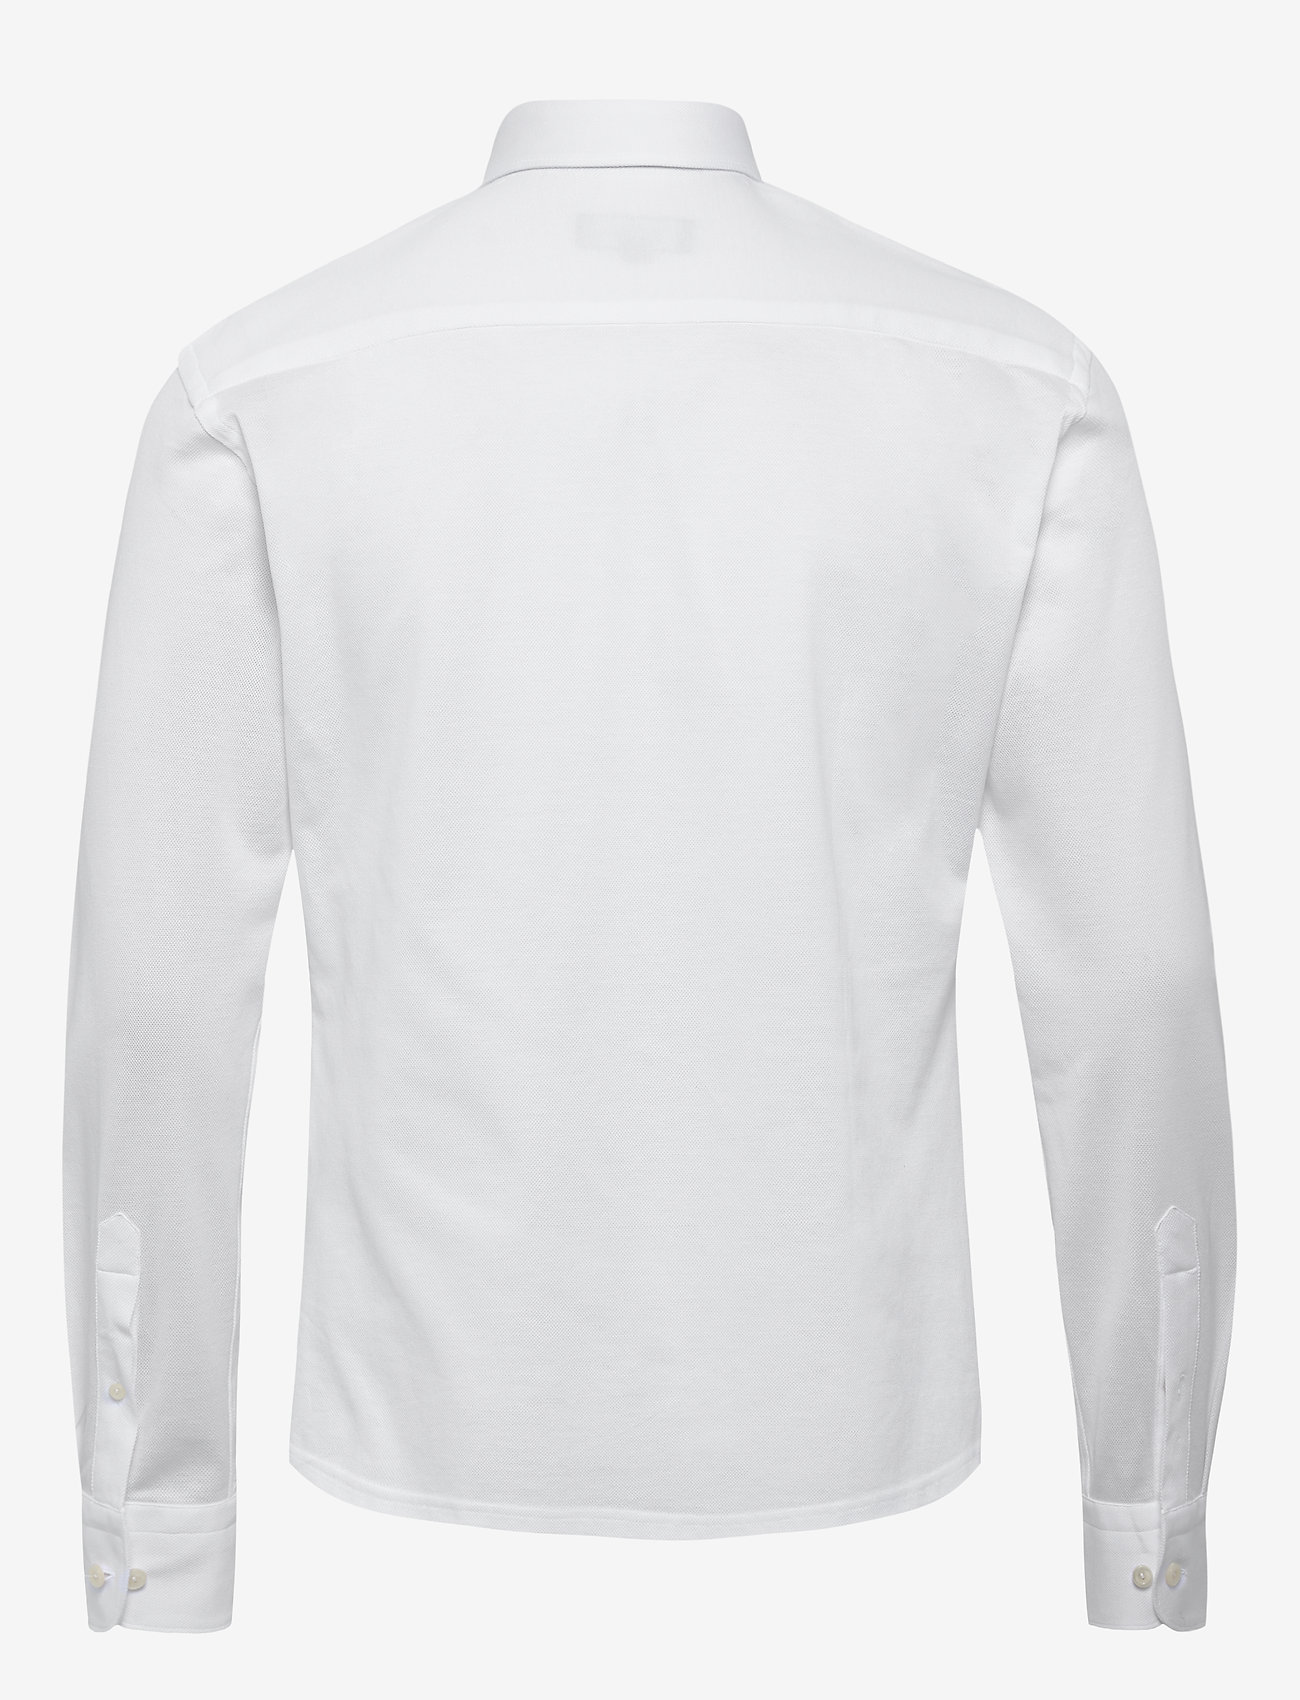 Eton Polo shirt - long sleeved - Skjorter WHITE - Menn Klær